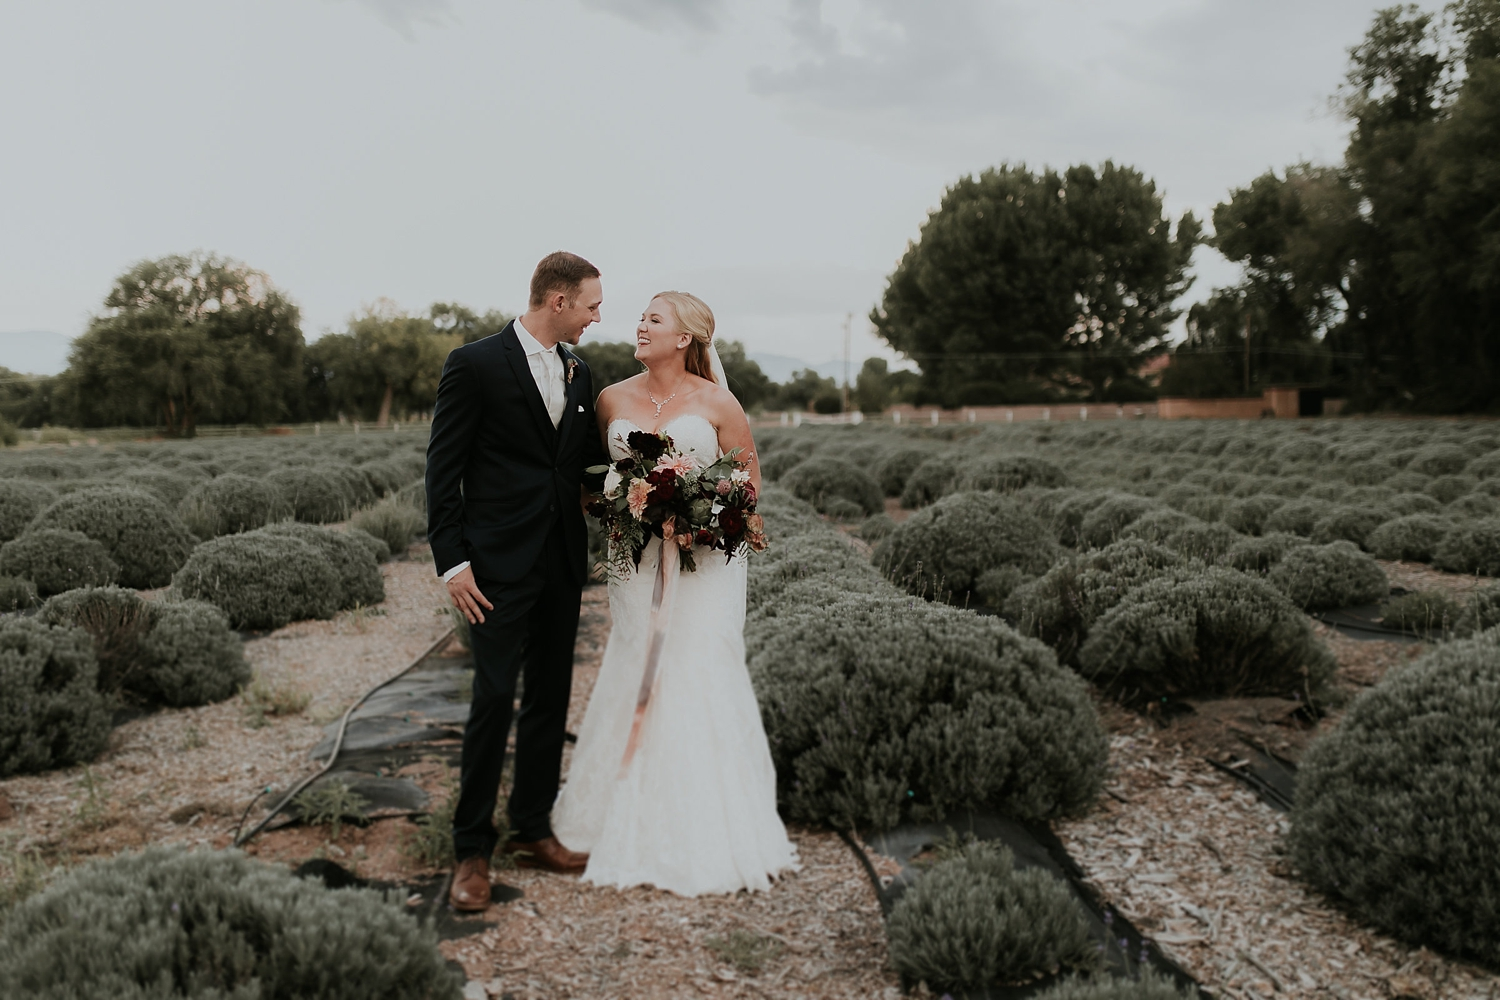 Alicia+lucia+photography+-+albuquerque+wedding+photographer+-+santa+fe+wedding+photography+-+new+mexico+wedding+photographer+-+los+poblanos+wedding+-+los+poblanos+fall+wedding_0075.jpg